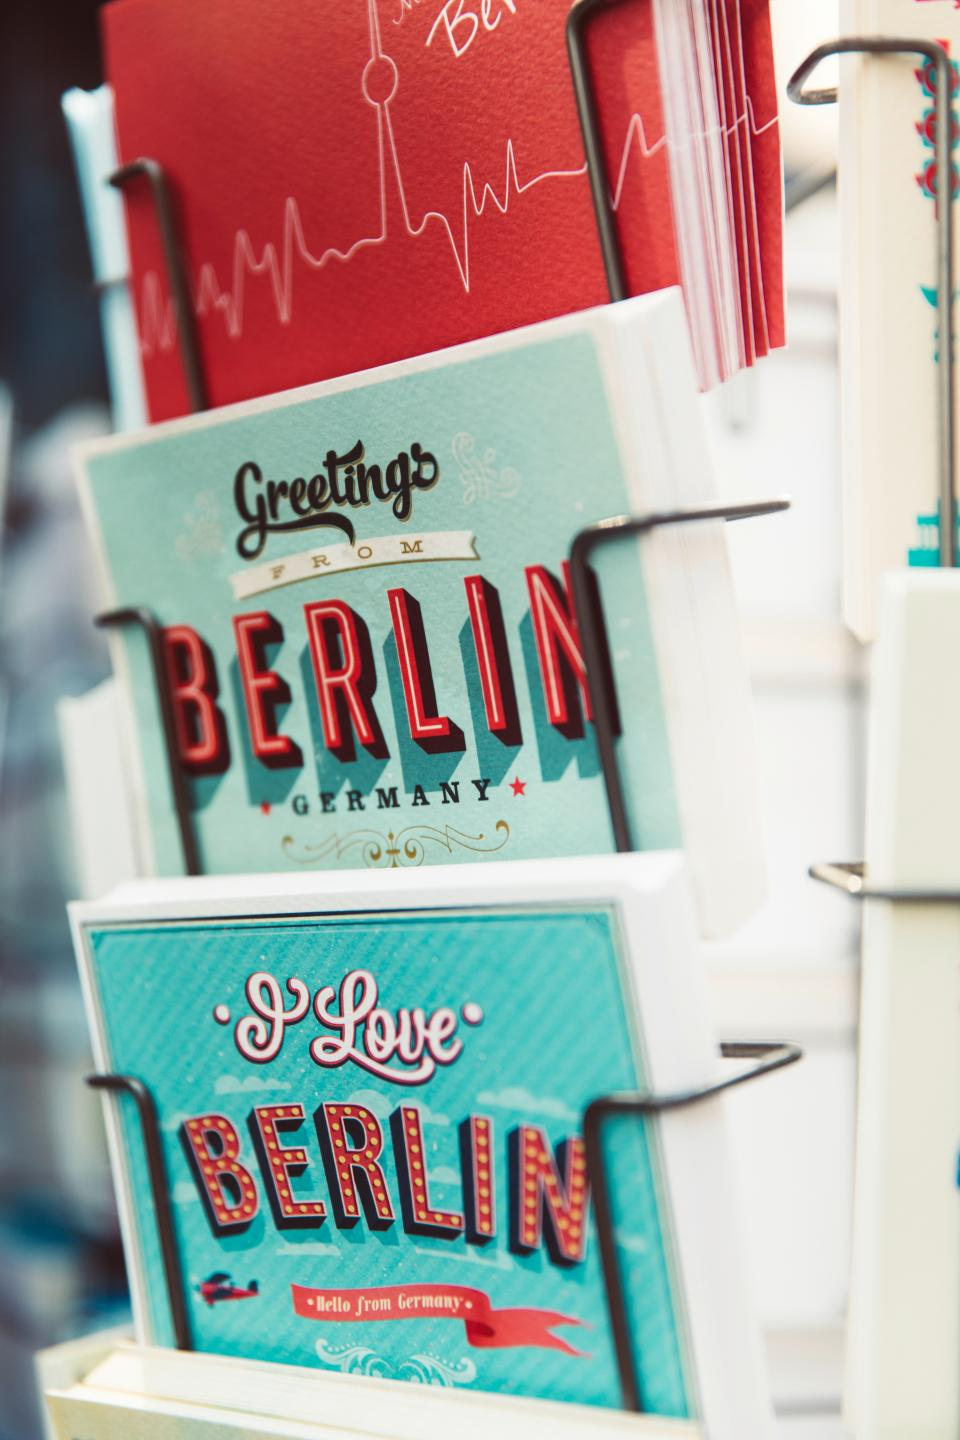 book germany bookstore blue rack library